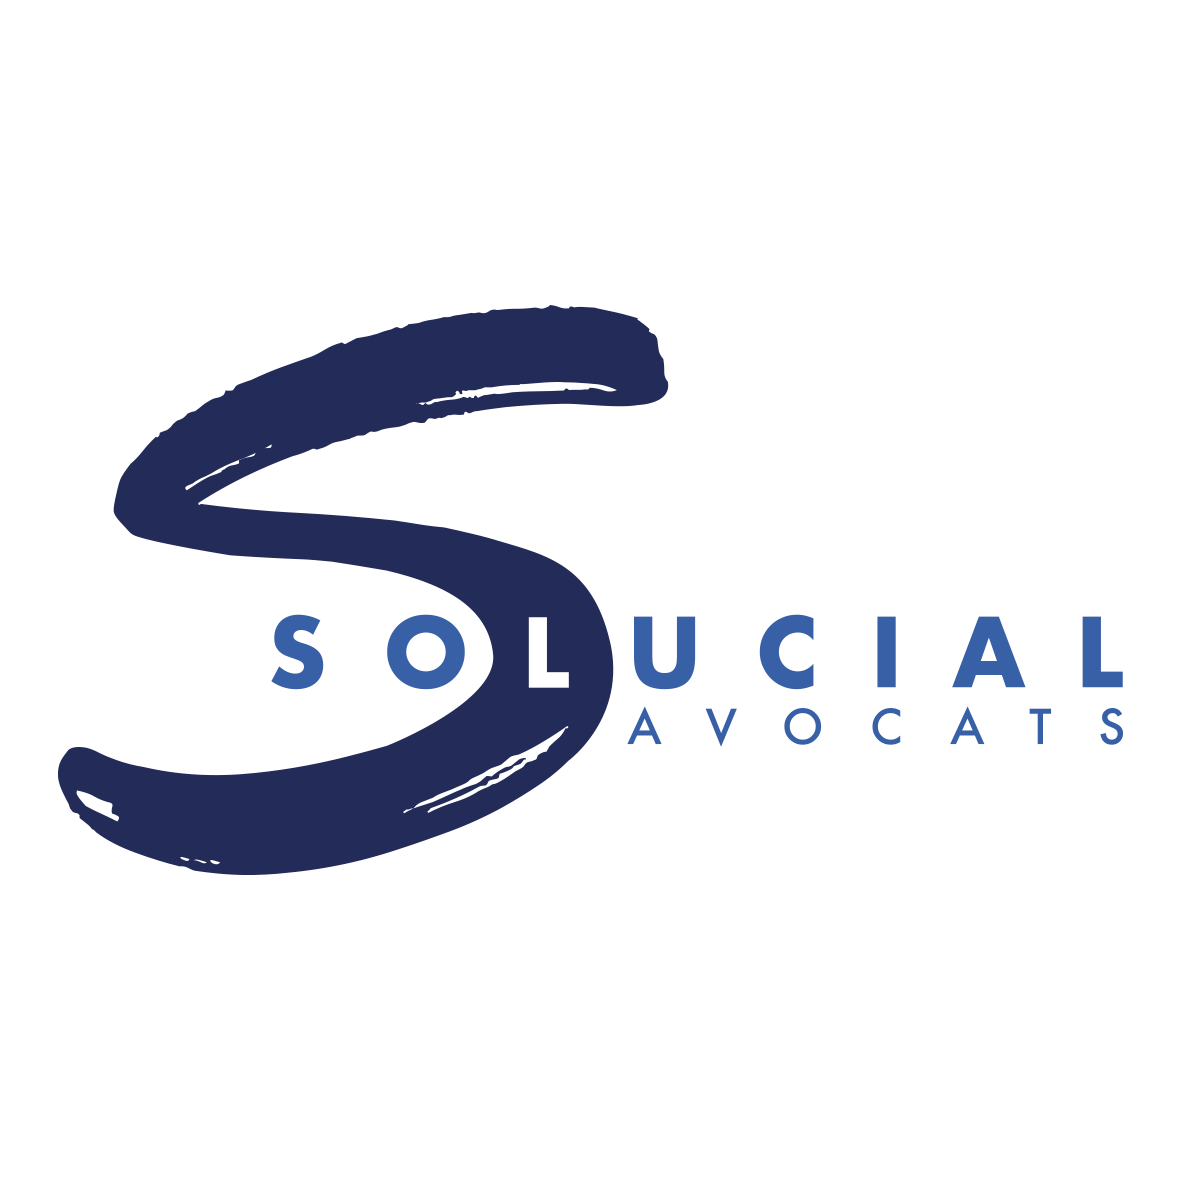 solucial clients QuinteSens accompagnement managers dirigeants